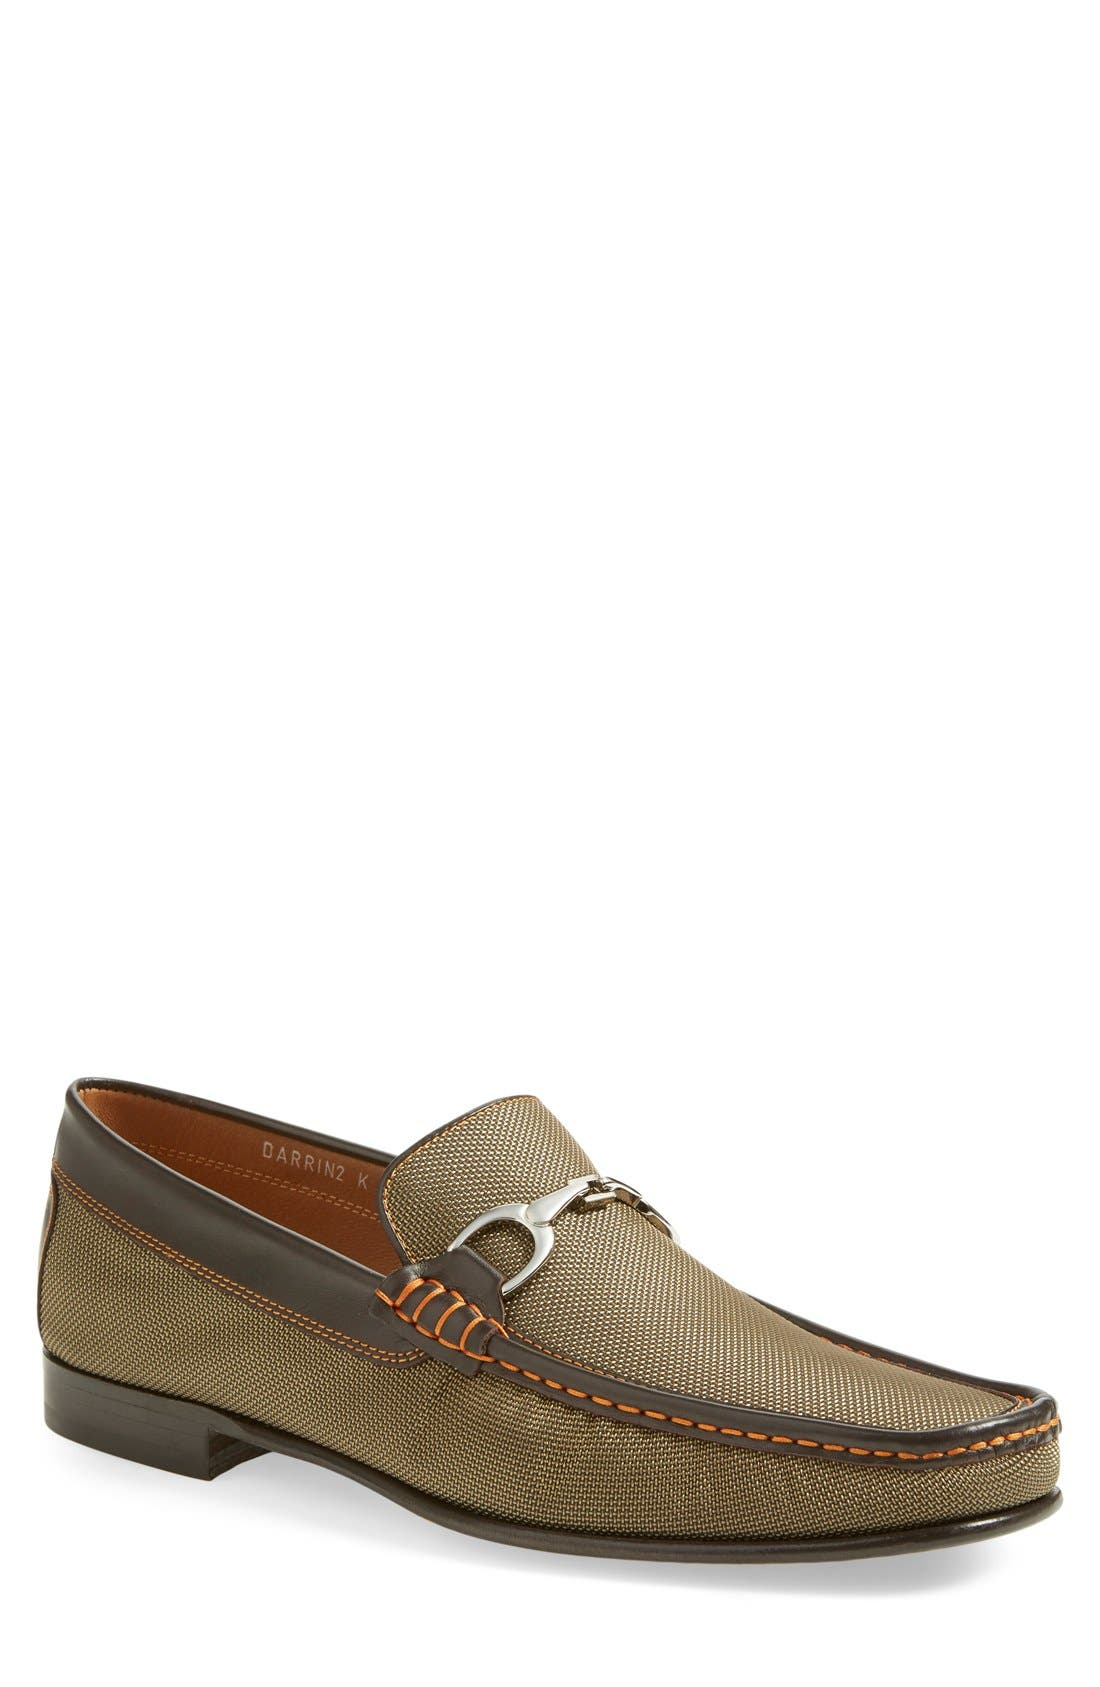 Darrin2 Bit Loafer,                             Main thumbnail 1, color,                             Bronze Leather